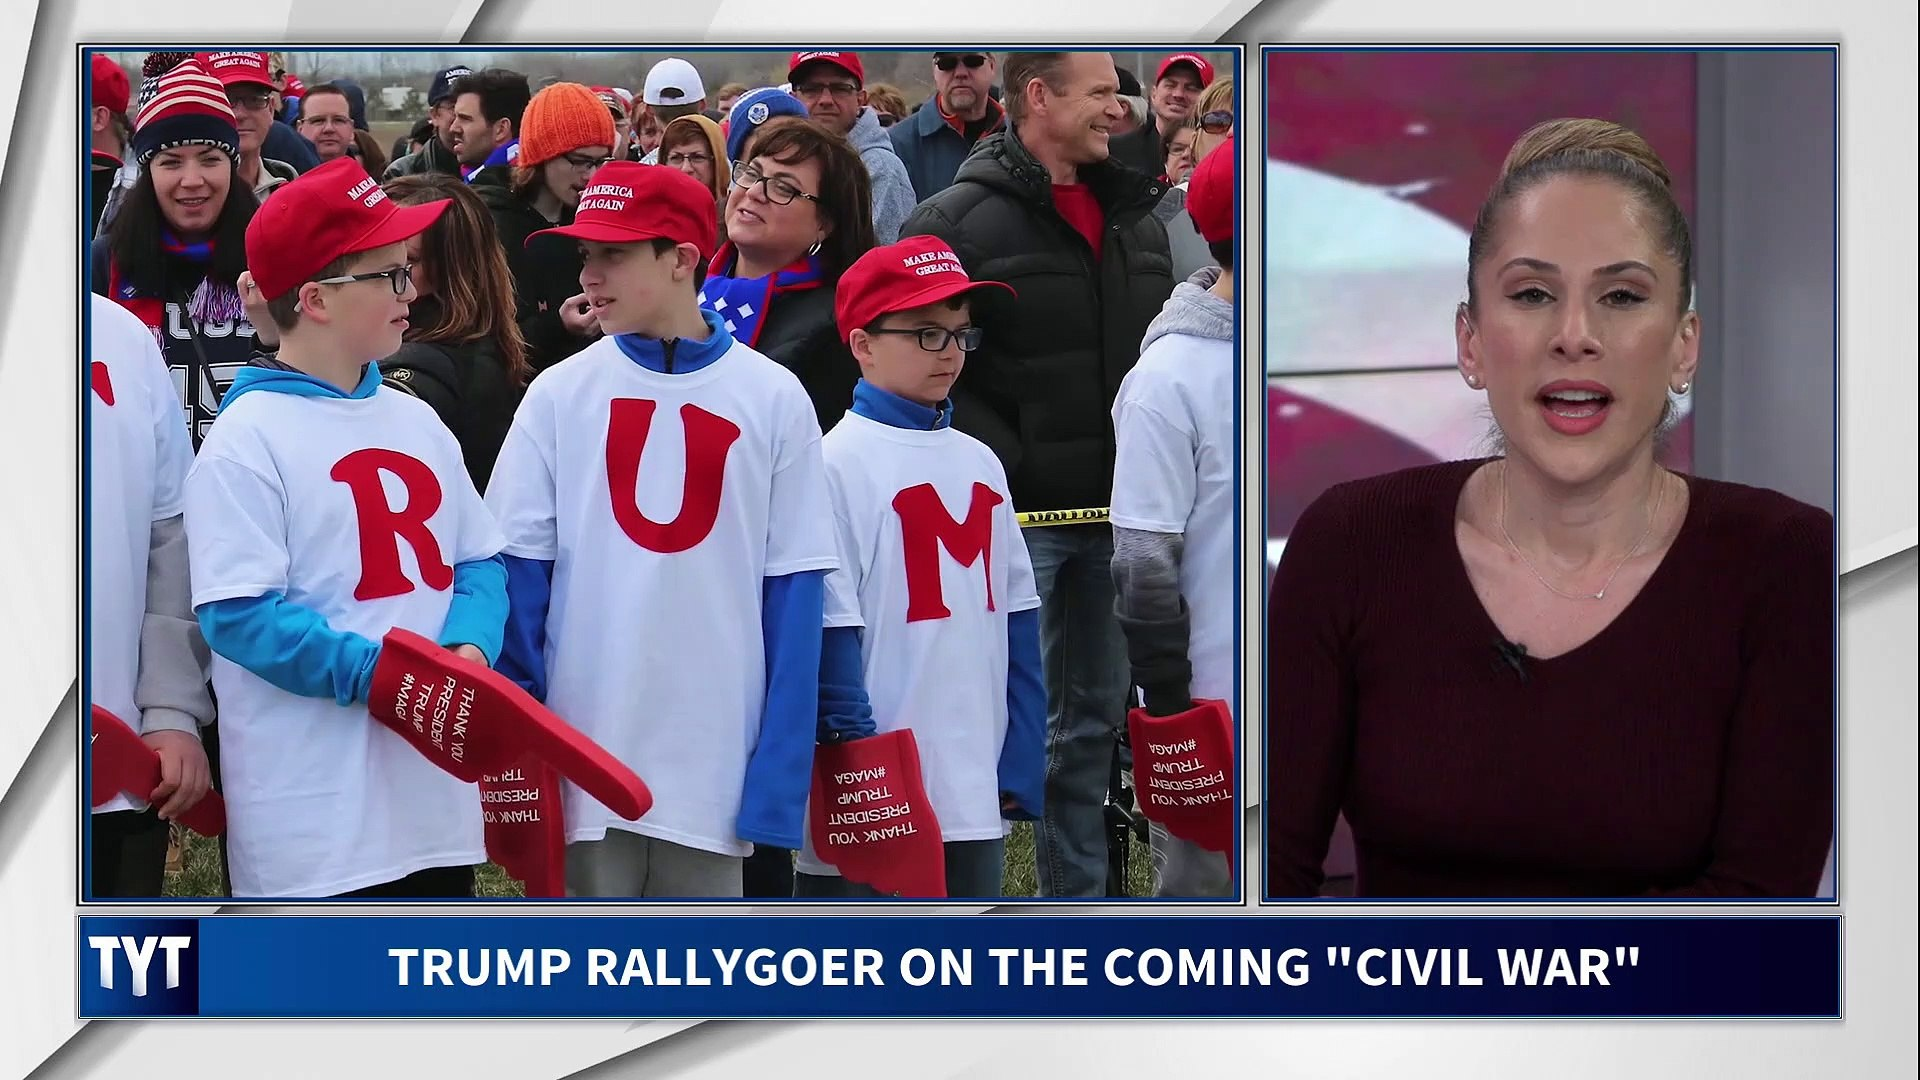 Trump Supporter Warns Of Coming Civil War